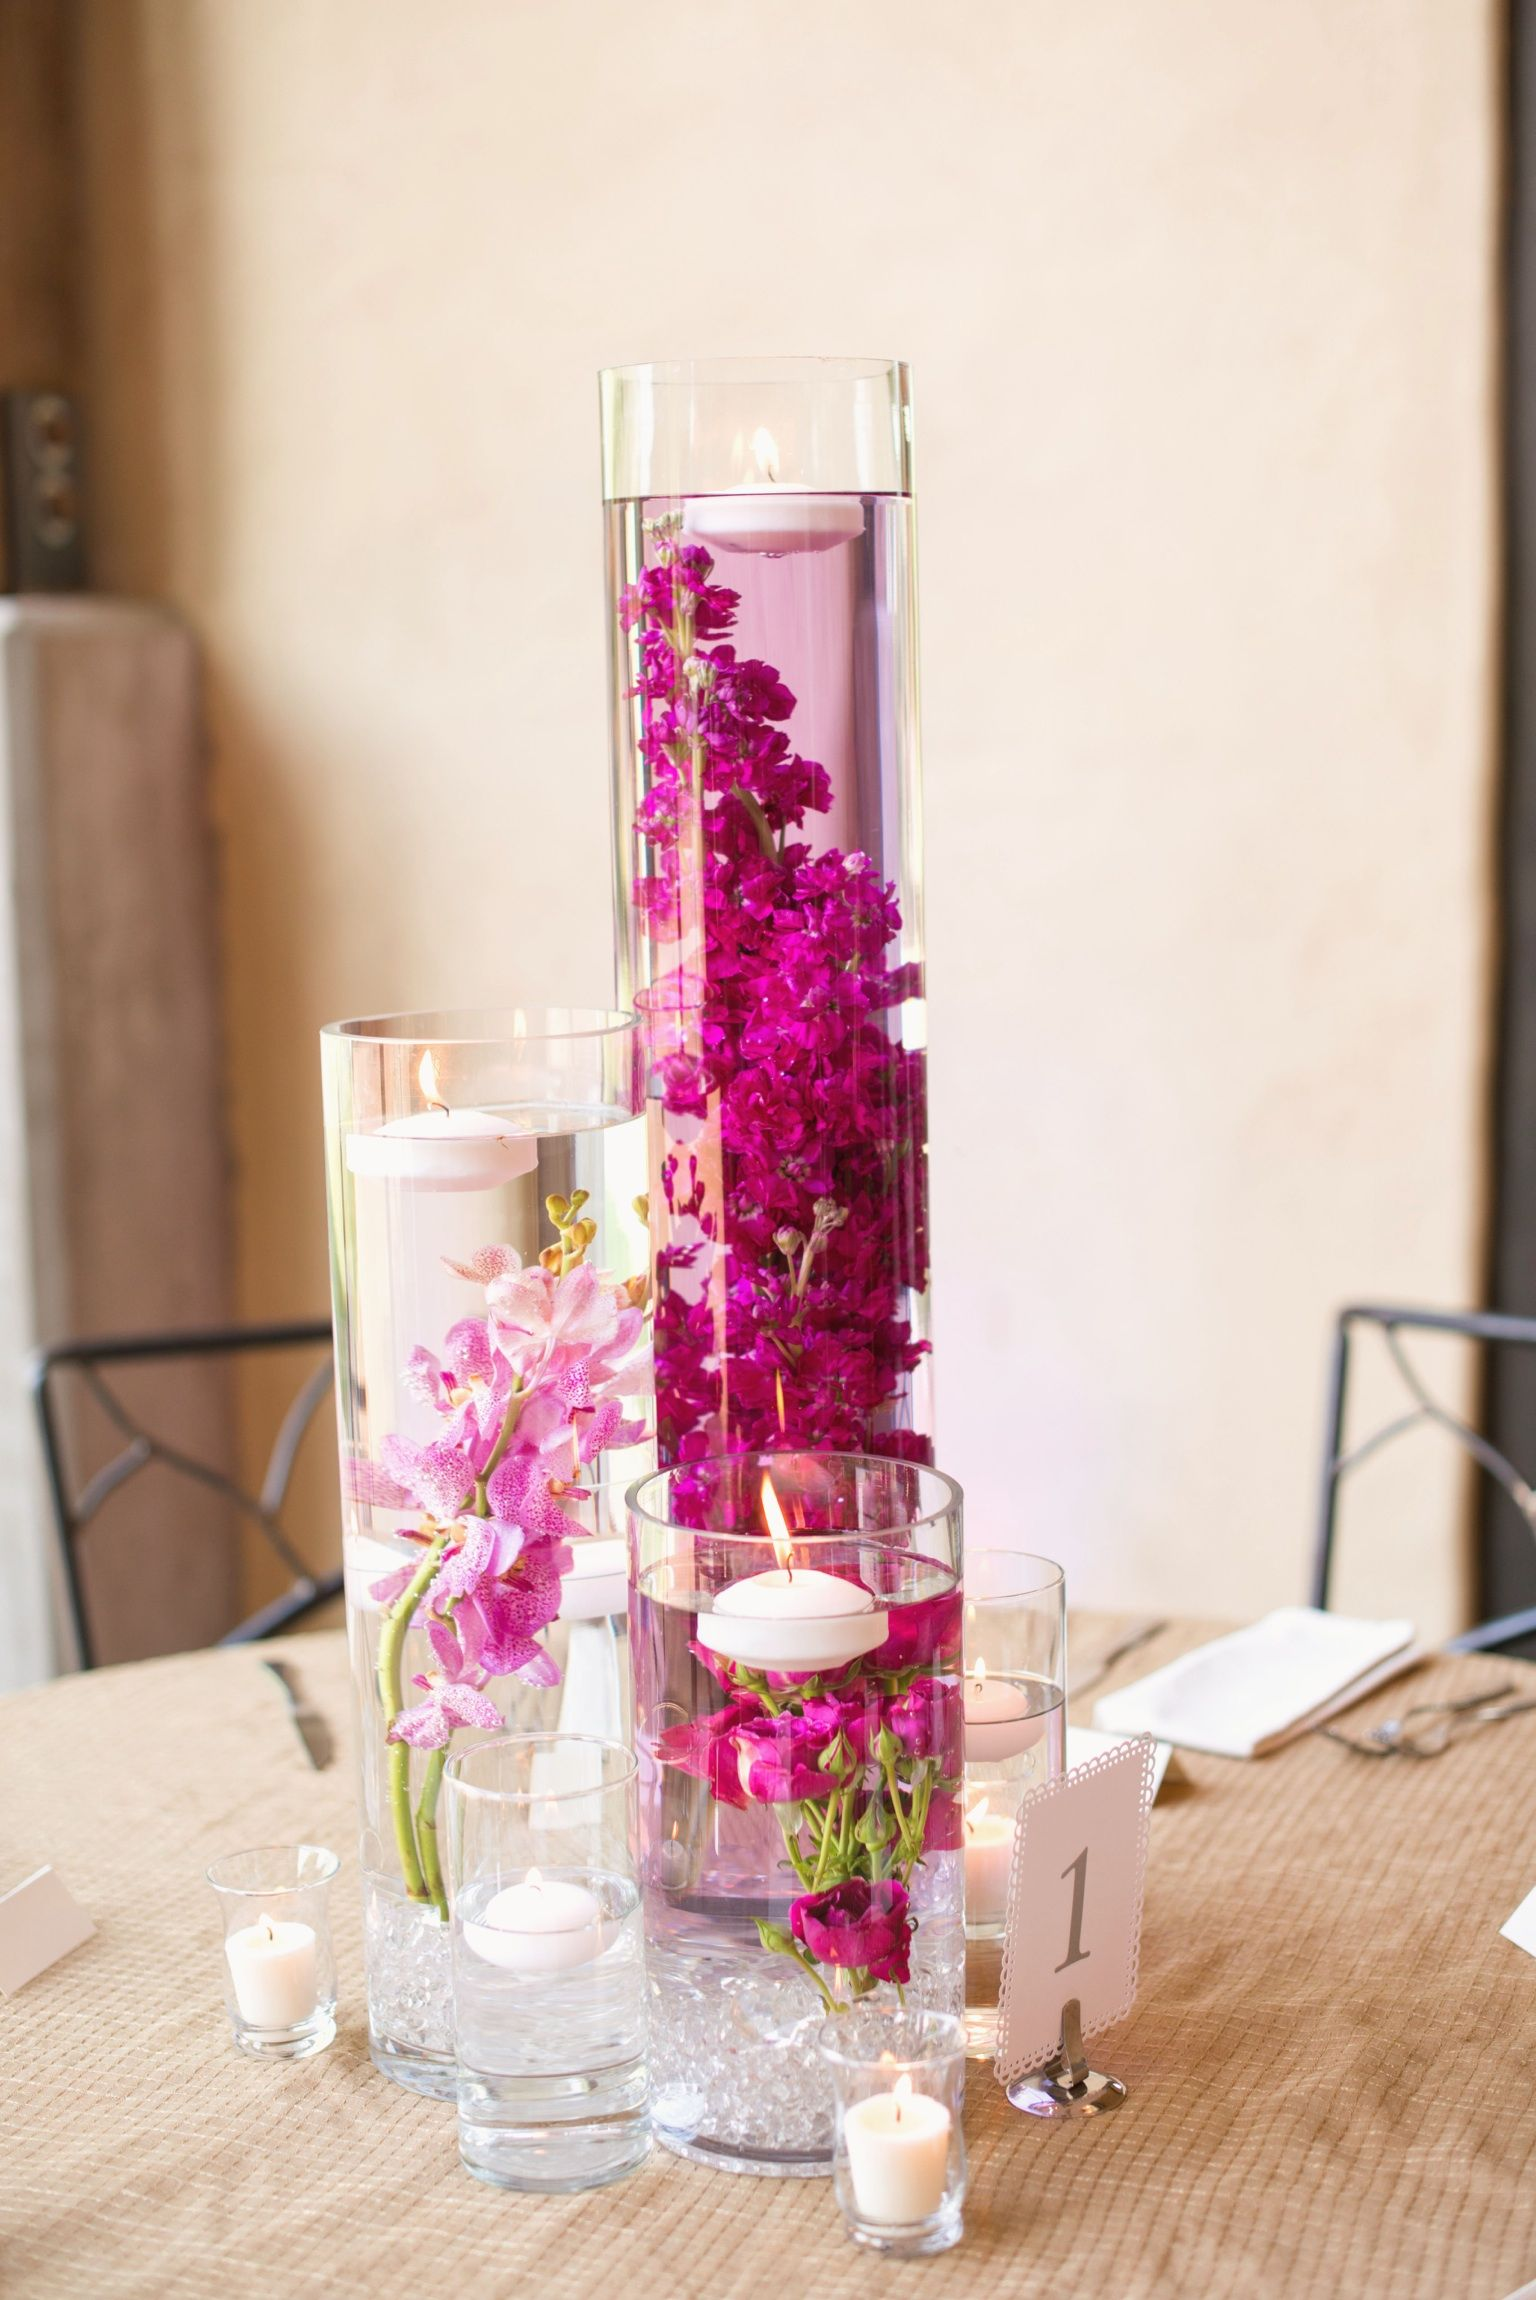 Trio of cylinders with submerged flowers